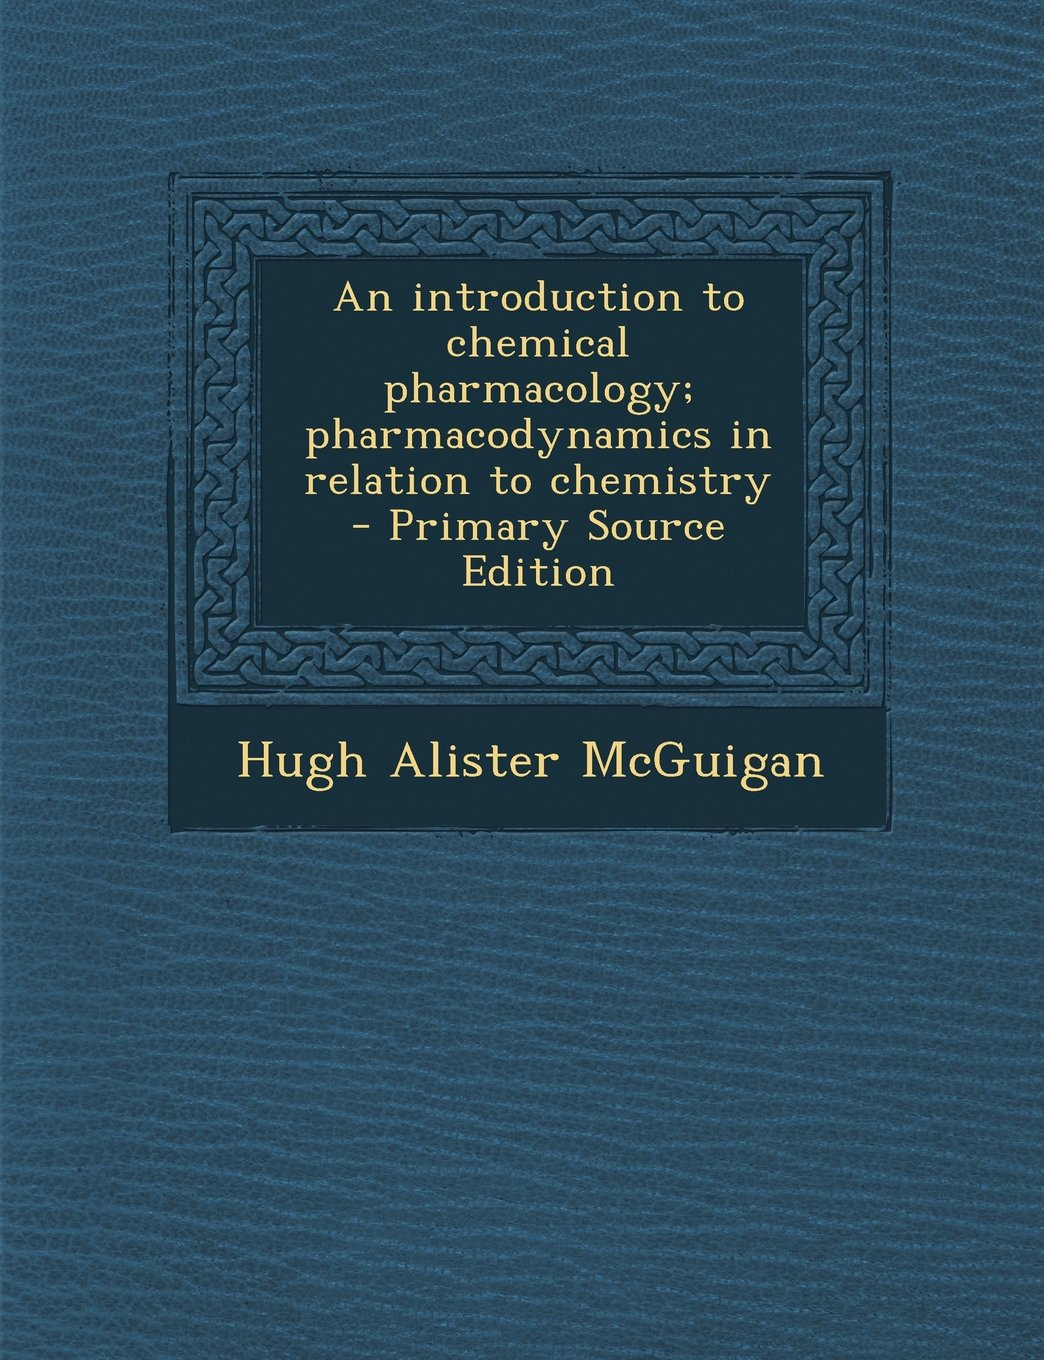 An introduction to chemical pharmacology; pharmacodynamics in relation to chemistry